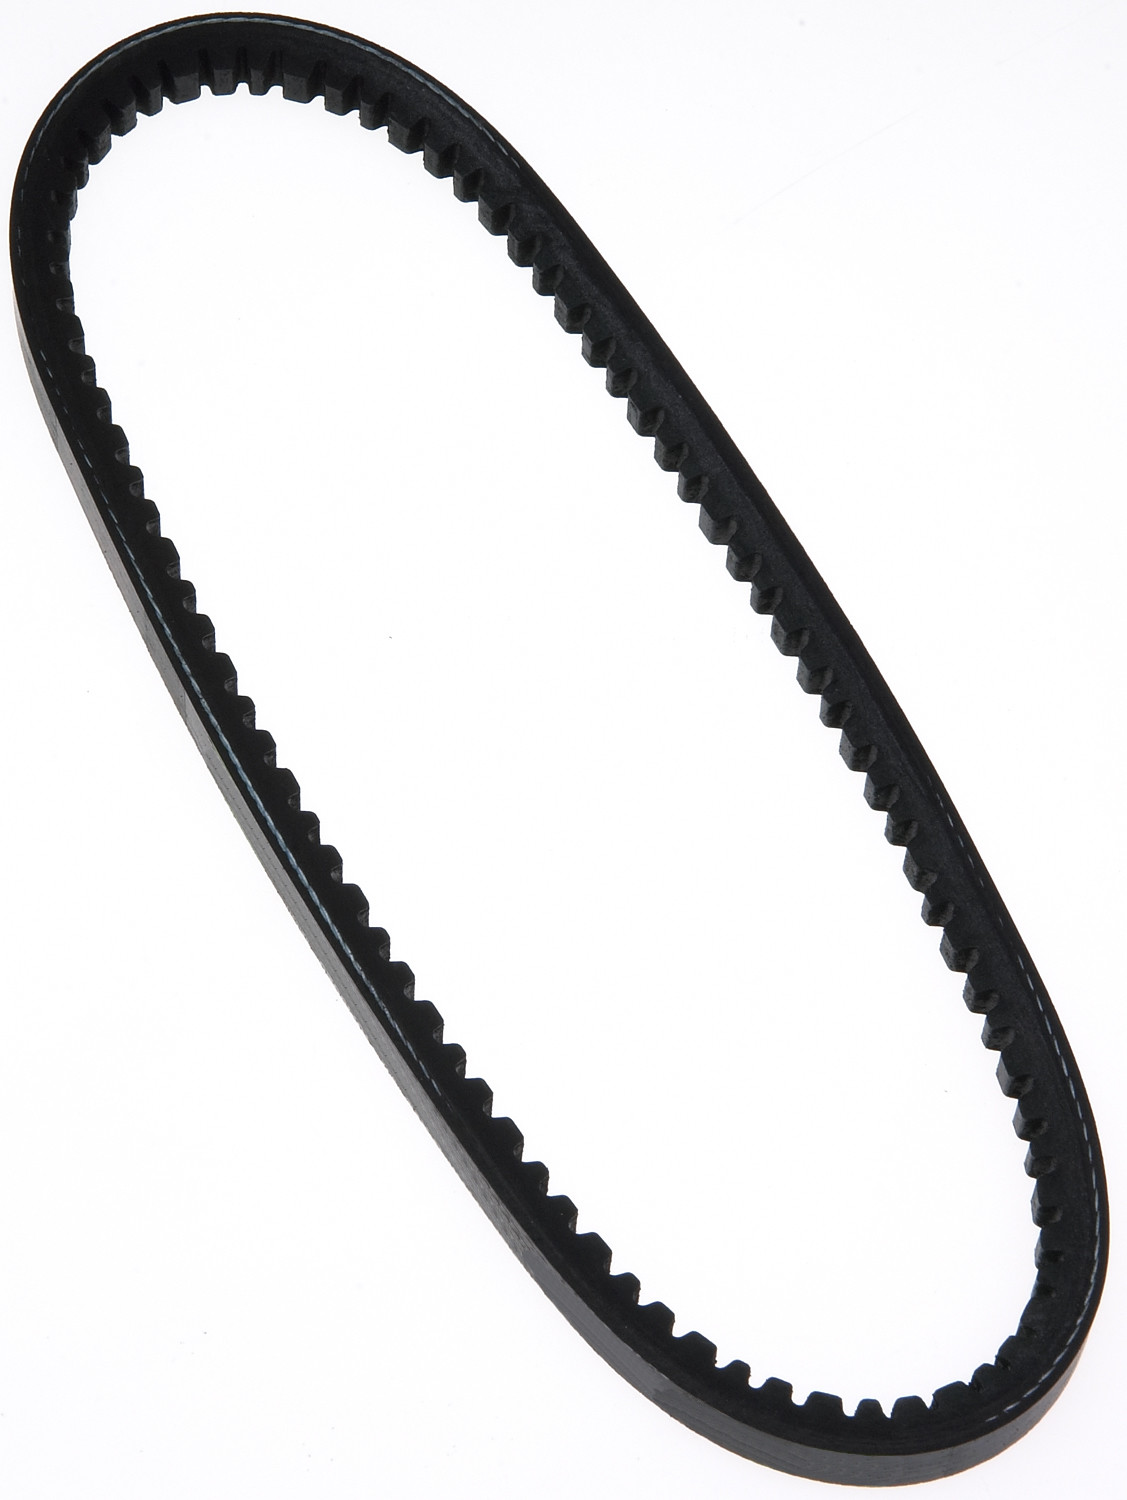 ROADMAX - High Capacity V-belt(standard) - RMX 17500AP